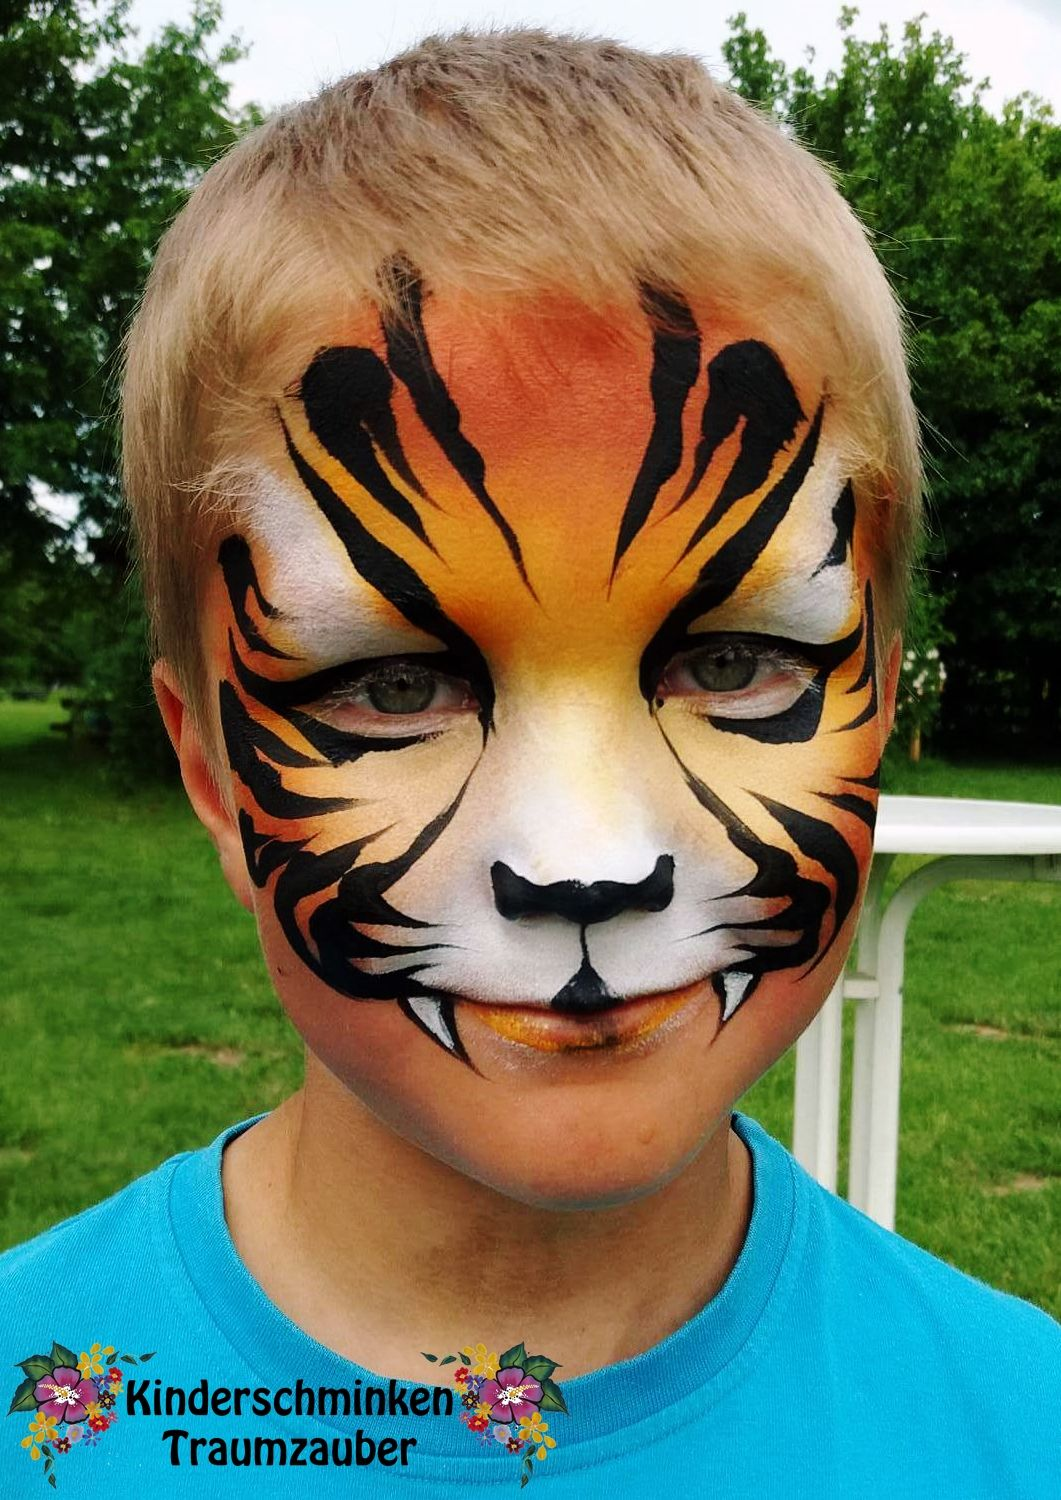 Kinderschminken Tiger Little Sweet Tiger By Kinderschminken Traumzauber Facepainting